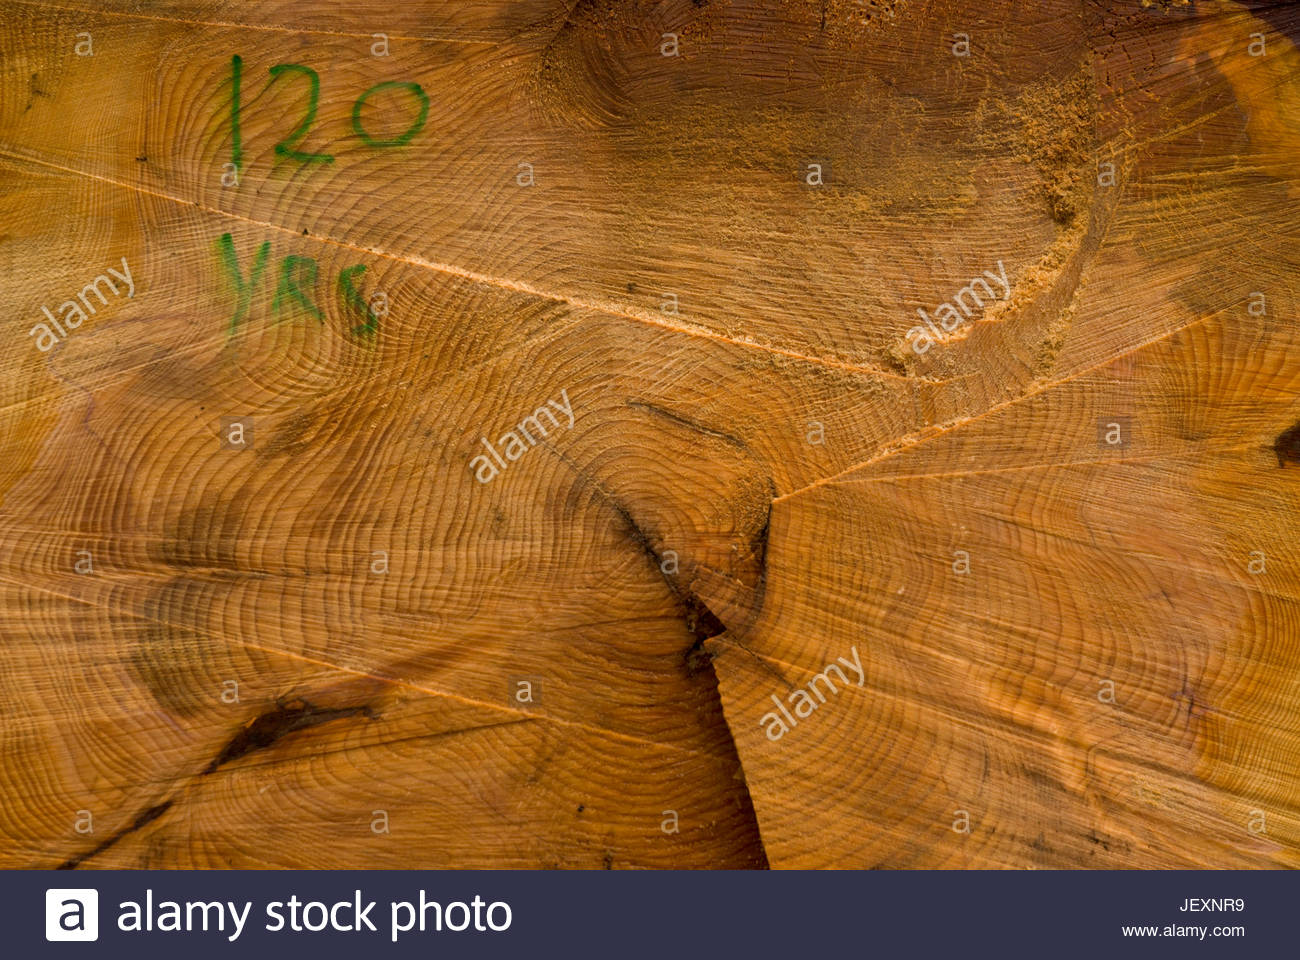 The age of a tree is written on its tree rings. - Stock Image